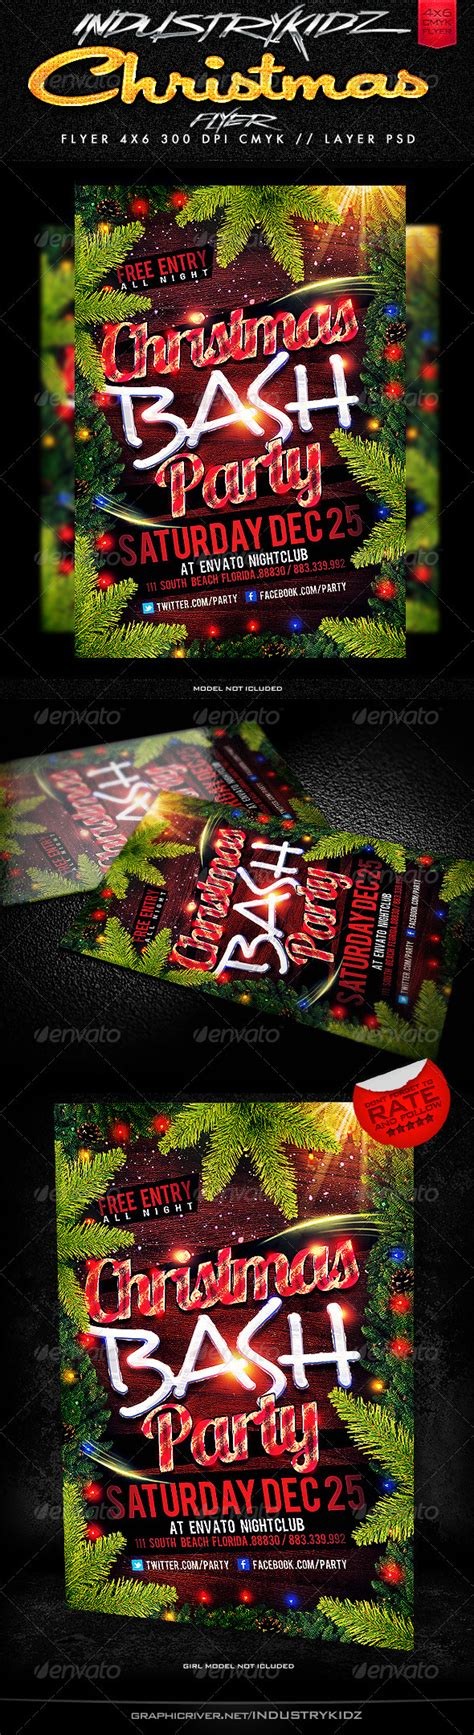 Christmas Party Flyer Templates By Industrykidz Graphicriver Graphicriver Event Flyer Template